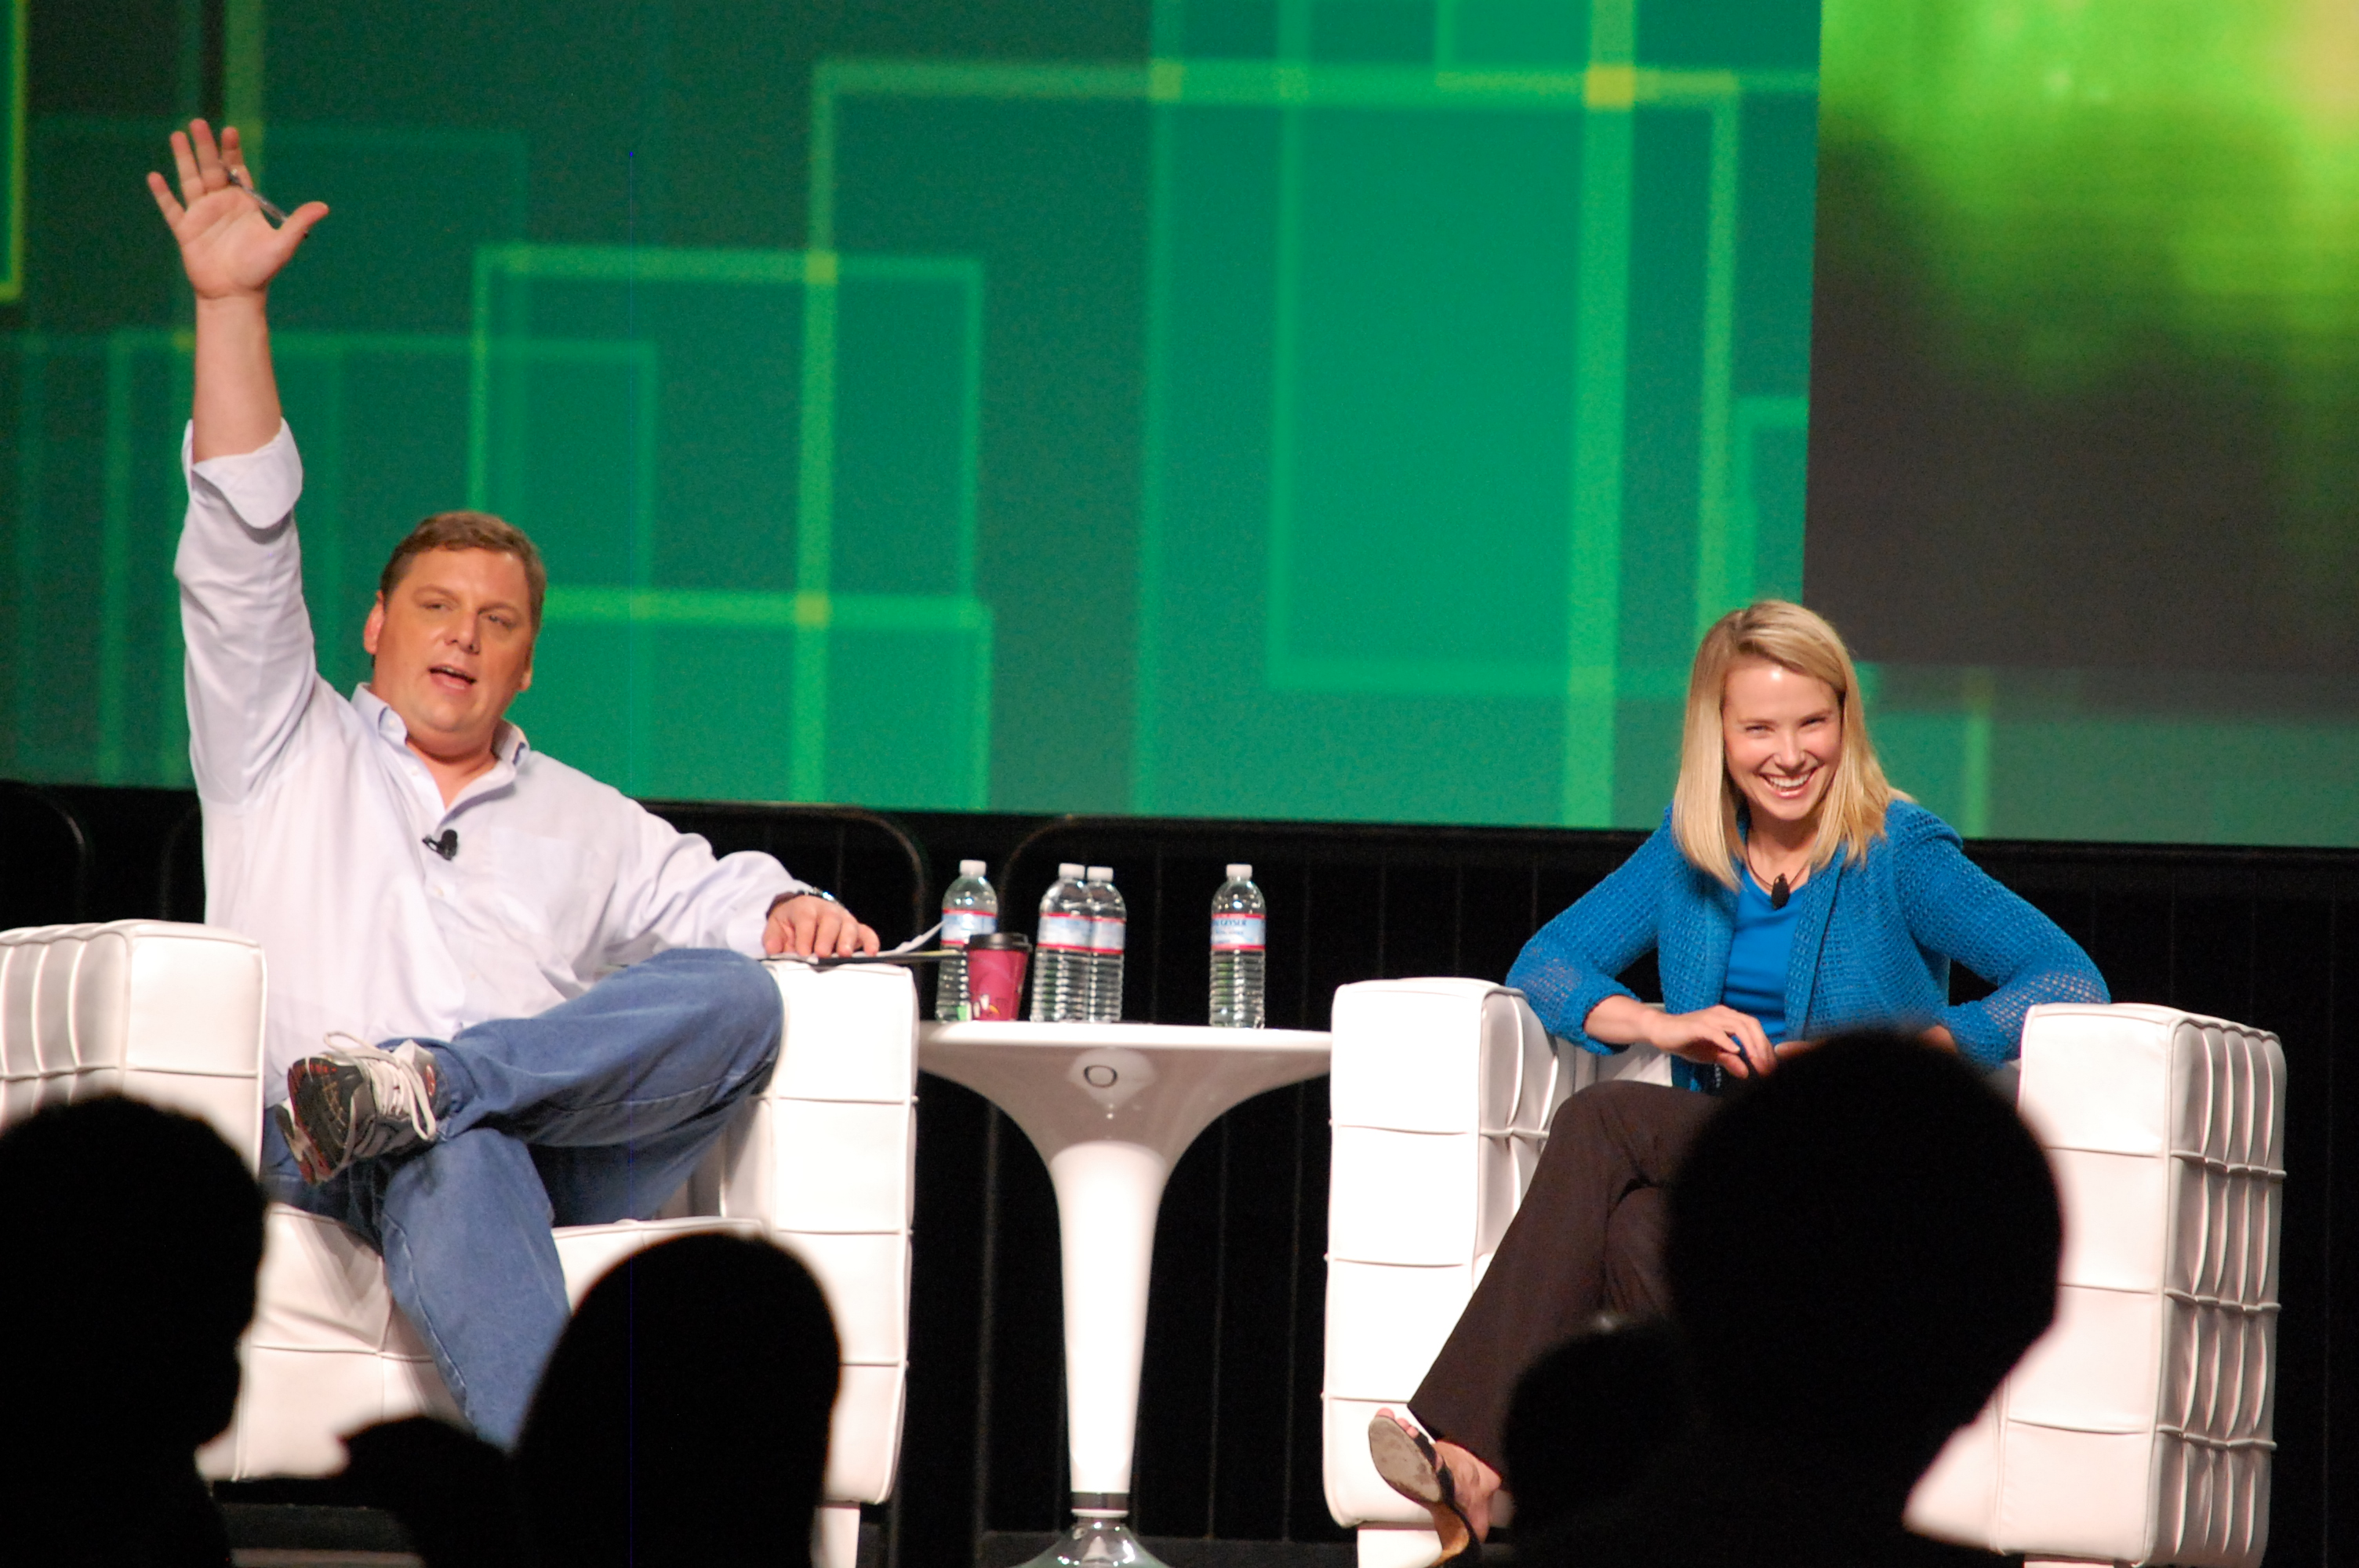 Yahoo! CEO Marissa Meyer with Michael Arrington at TechCrunch Disrupt